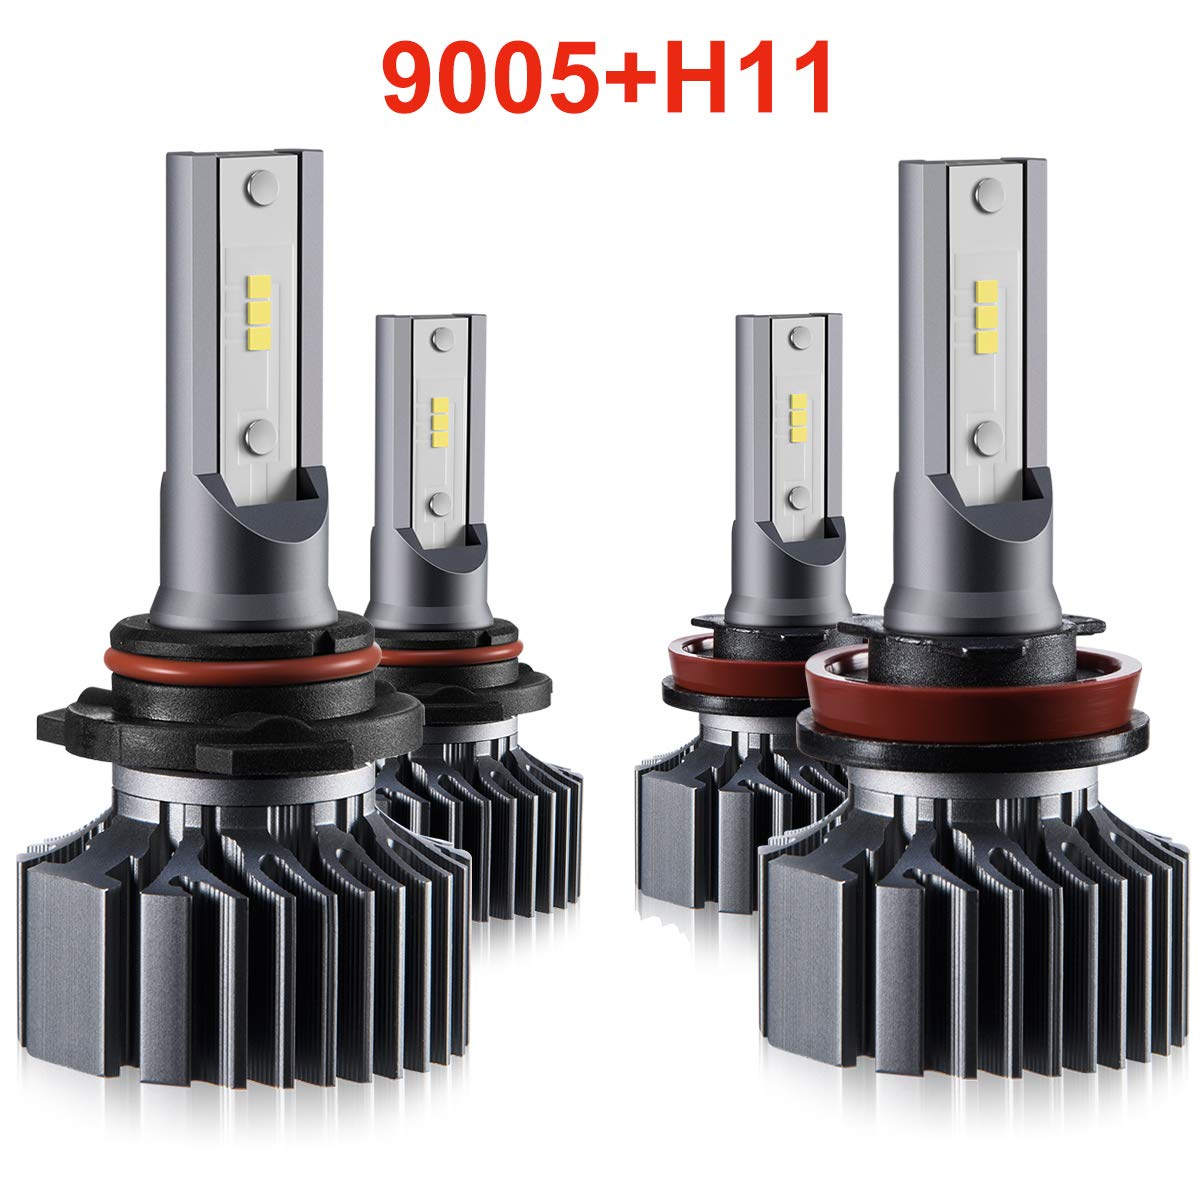 SEALIGHT 9005 HB3 LED Headlight Bulbs High Beam Conversion Kit,Non-Polarity,Upgraded 12xCSP Chips Head light Halogen Replacement 6000K Xenon White(Pack of 2)